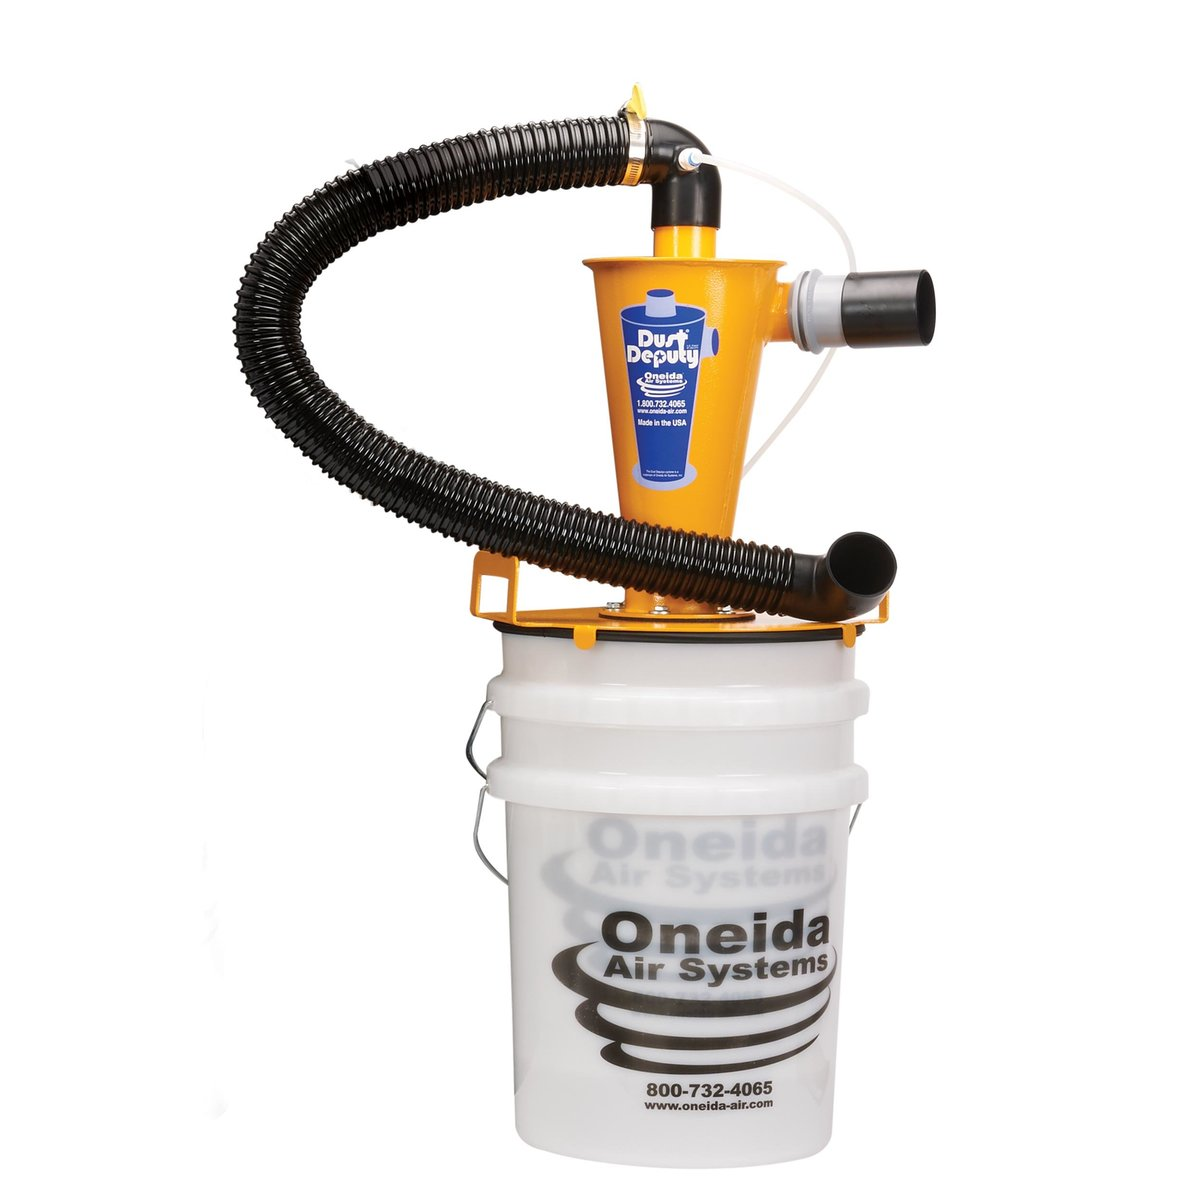 The Dust Deputy Deluxe Anti-Static Cyclone Separator 5 Gallon Kit